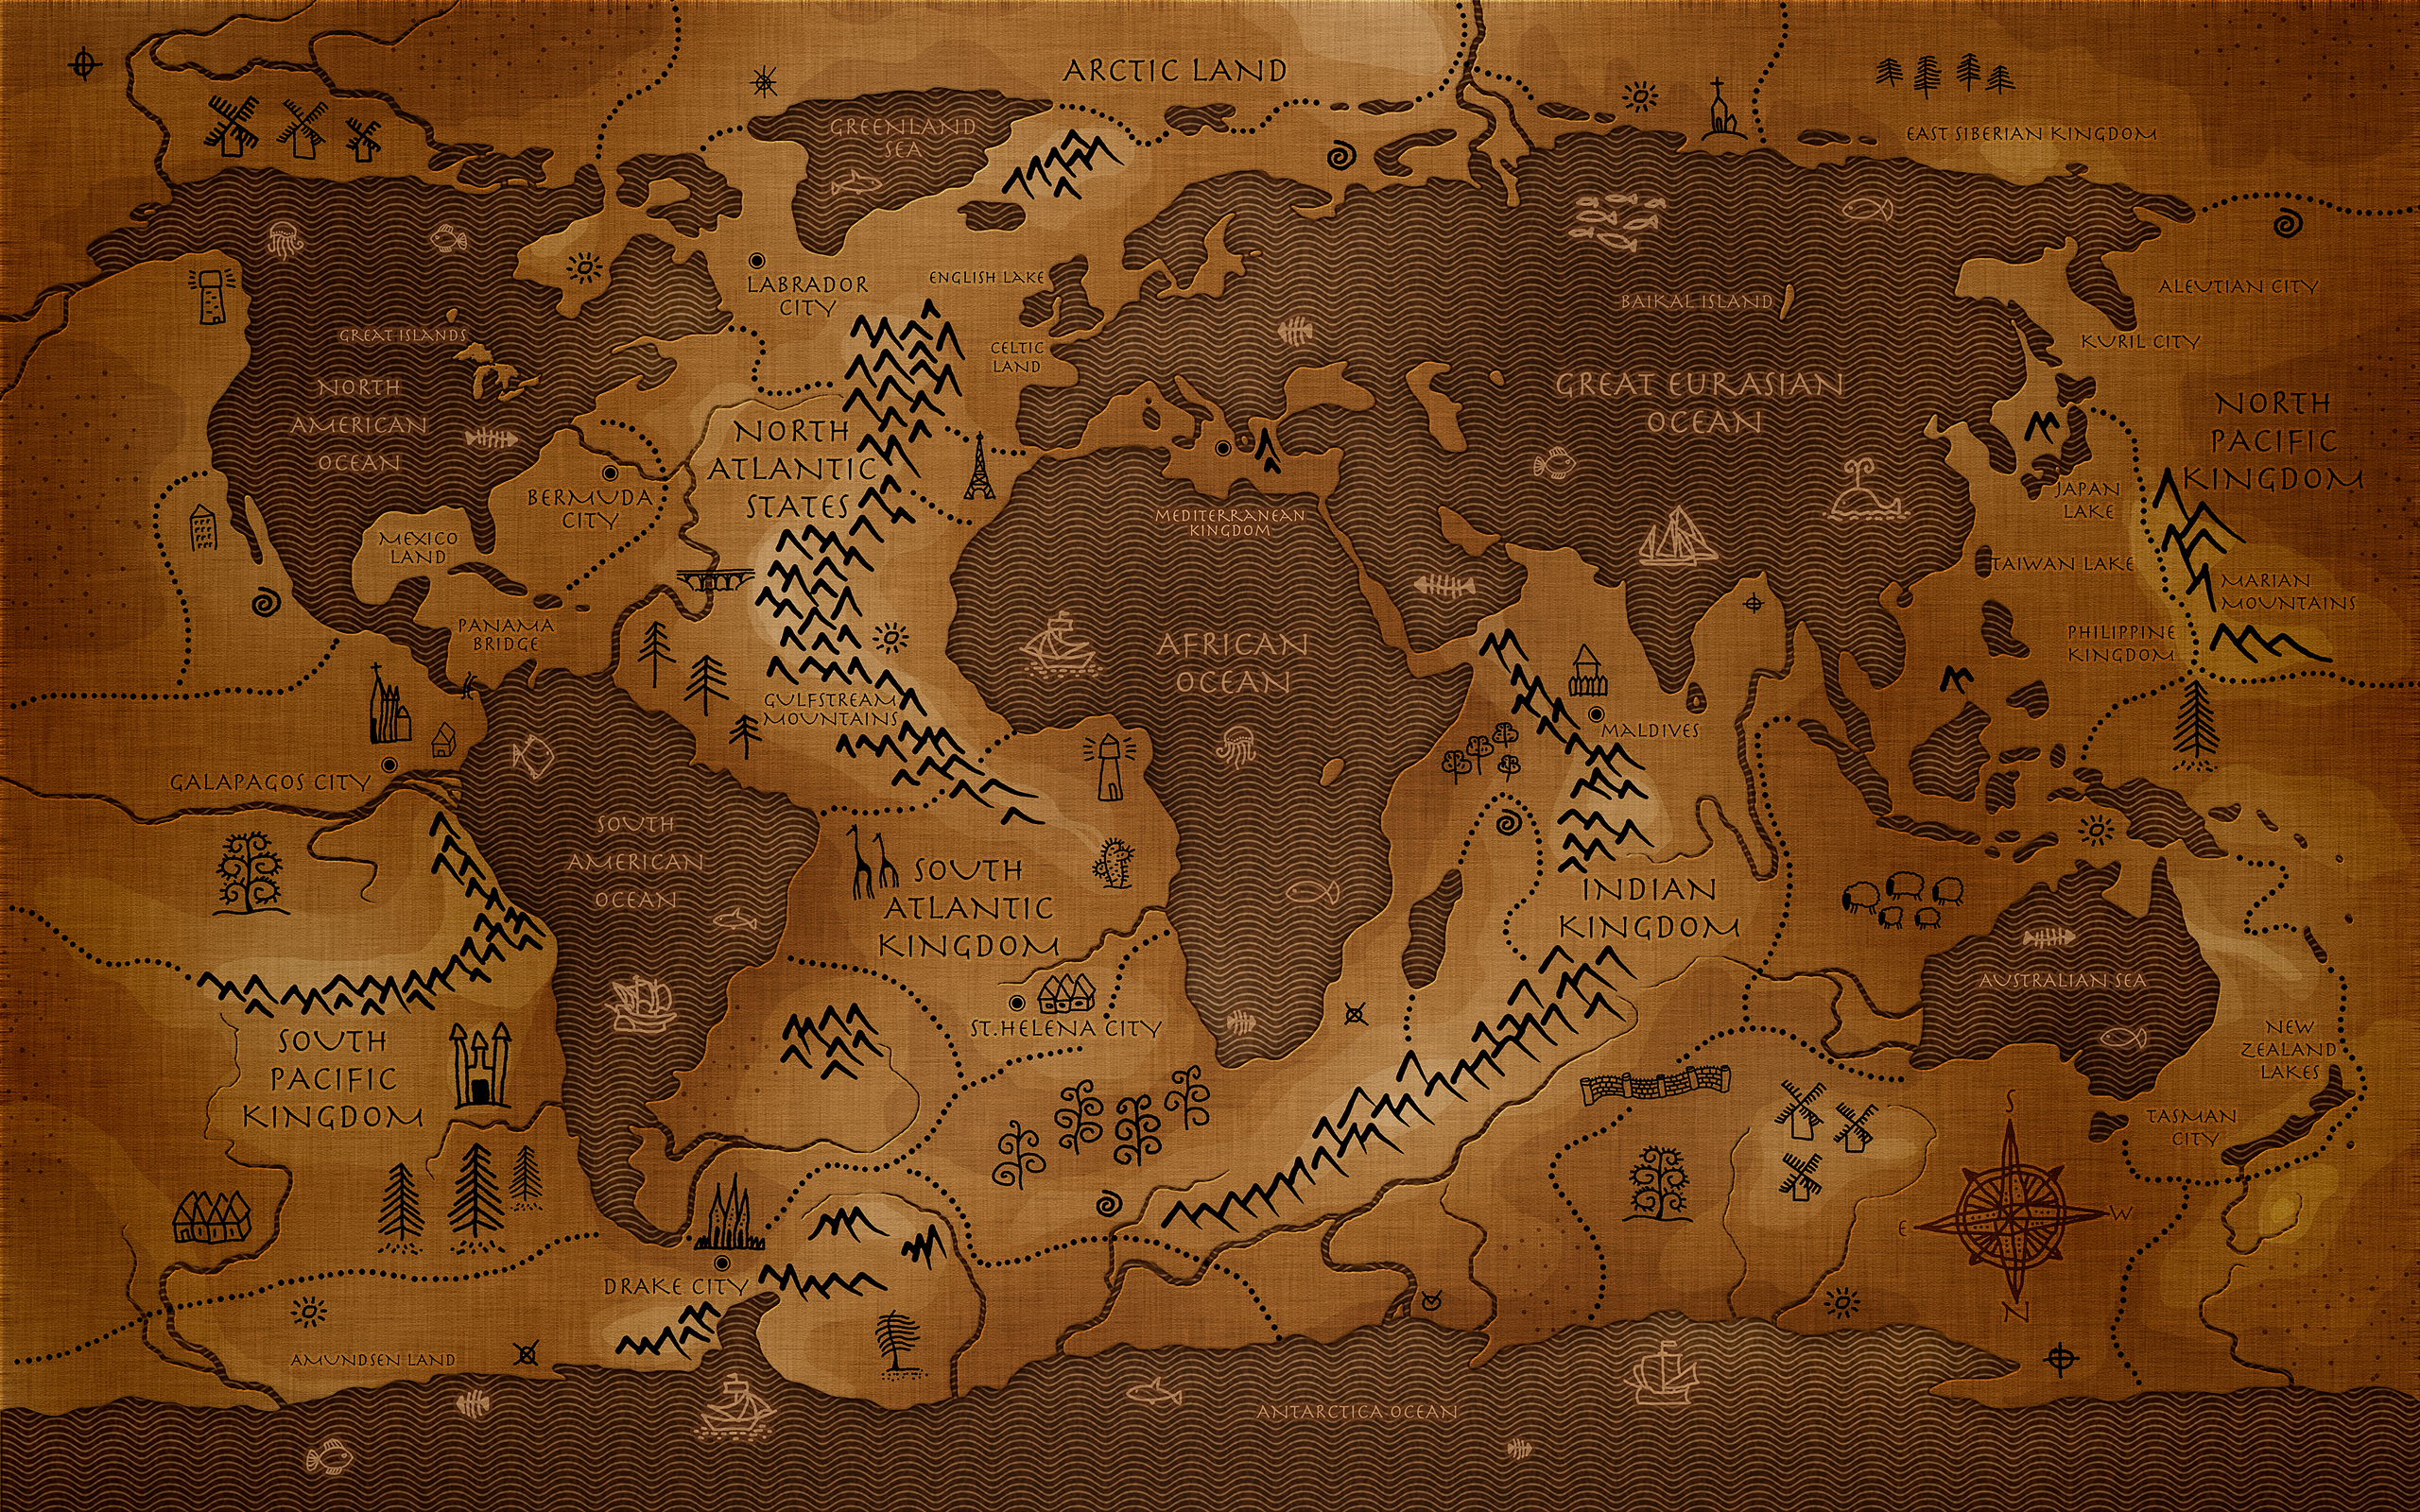 World map hd wallpaper wallpapersafari world map wallpapers hd wallpapers 2560x1600 gumiabroncs Image collections